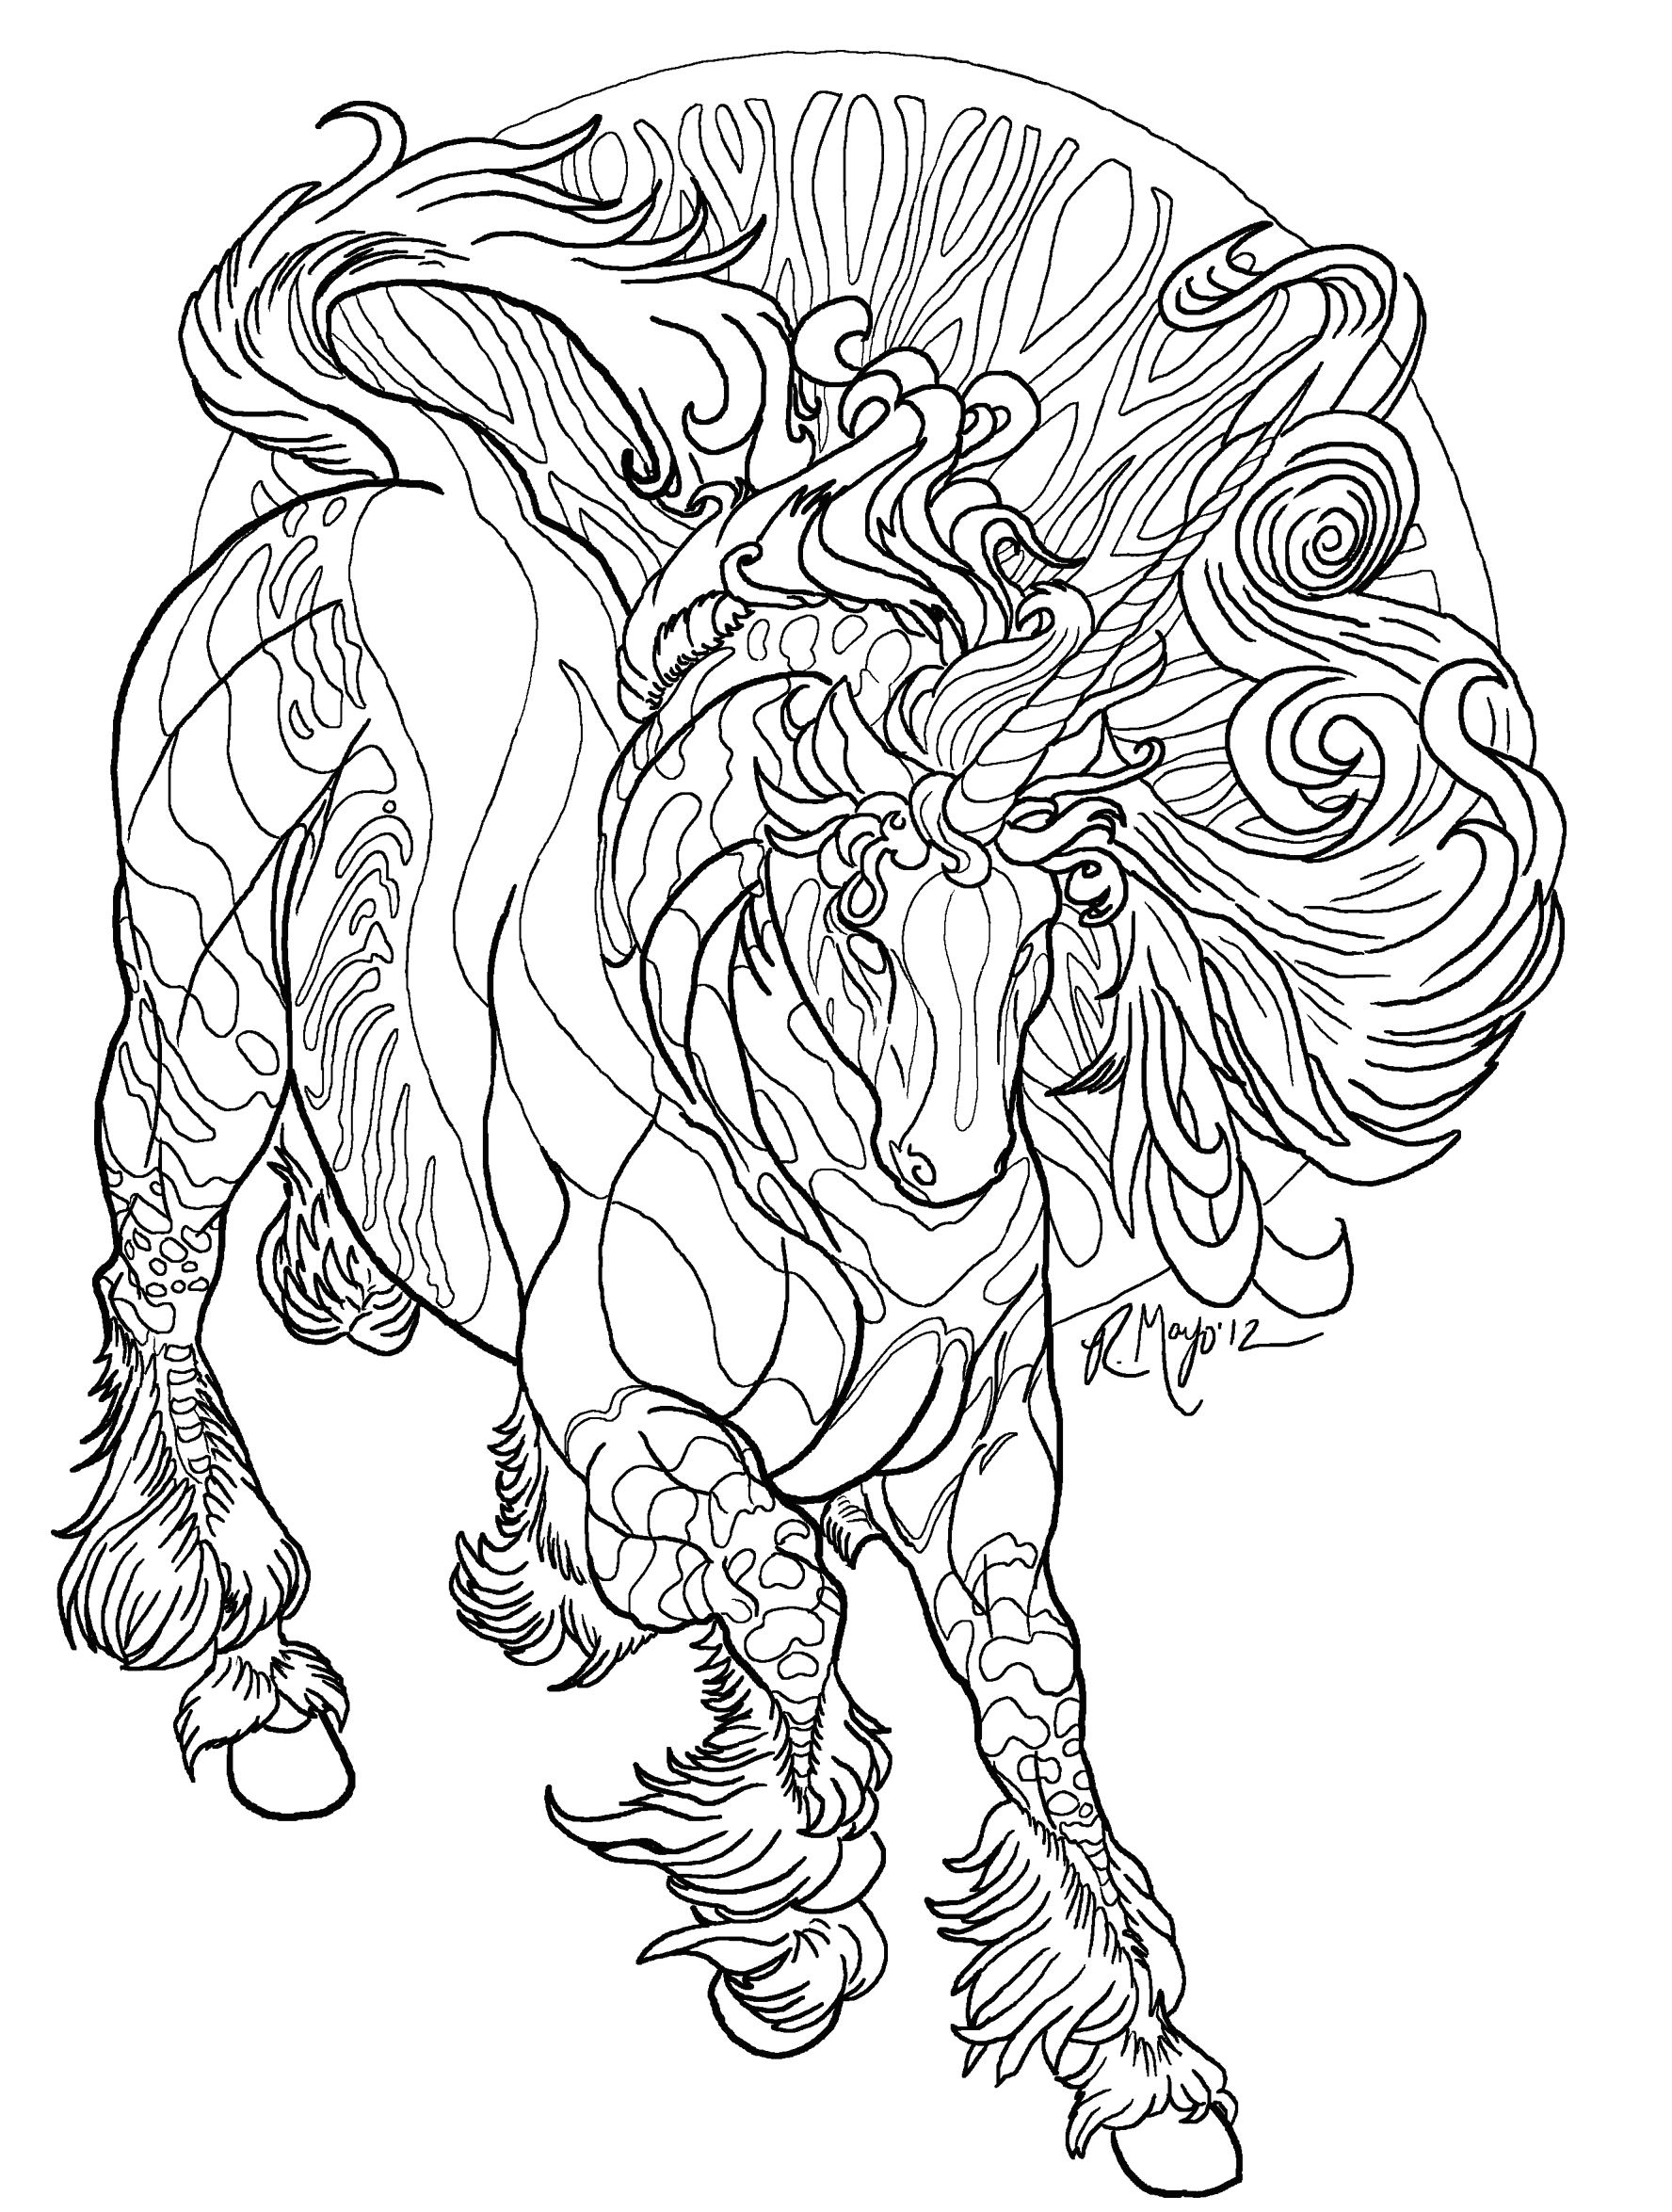 coloring sheet unicorn coloring pictures to print unicorn rainbow coloring pages at getcoloringscom free coloring to unicorn coloring sheet print pictures